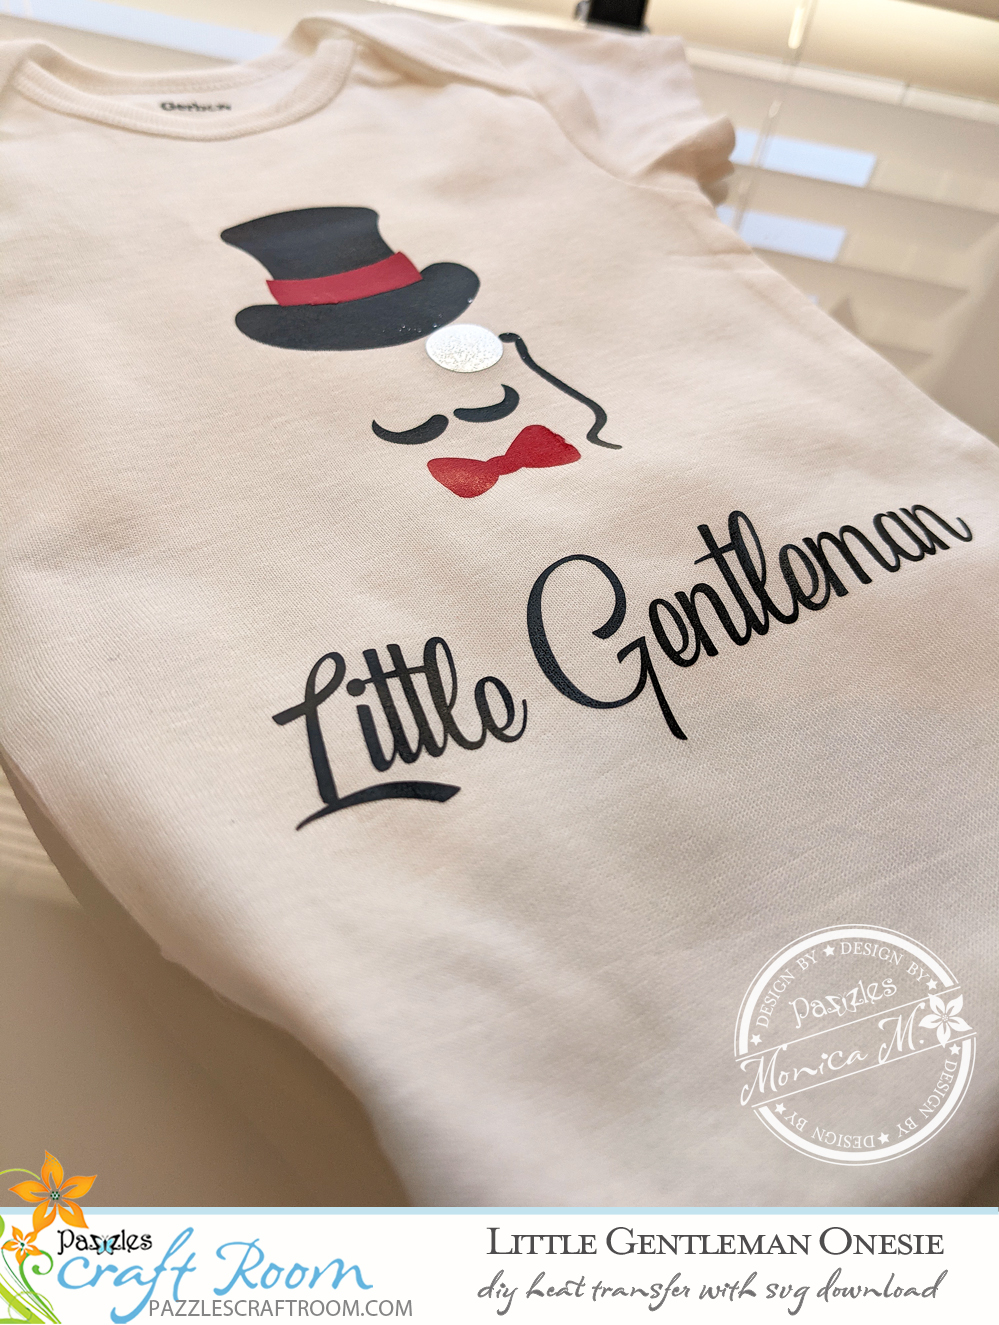 Pazzles DIY Little Gentleman Onesie with instant SVG download.  Instant SVG download compatible with all major electronic cutters including Pazzles Inspiration, Cricut, and Silhouette Cameo. Design by Monica Martinez.